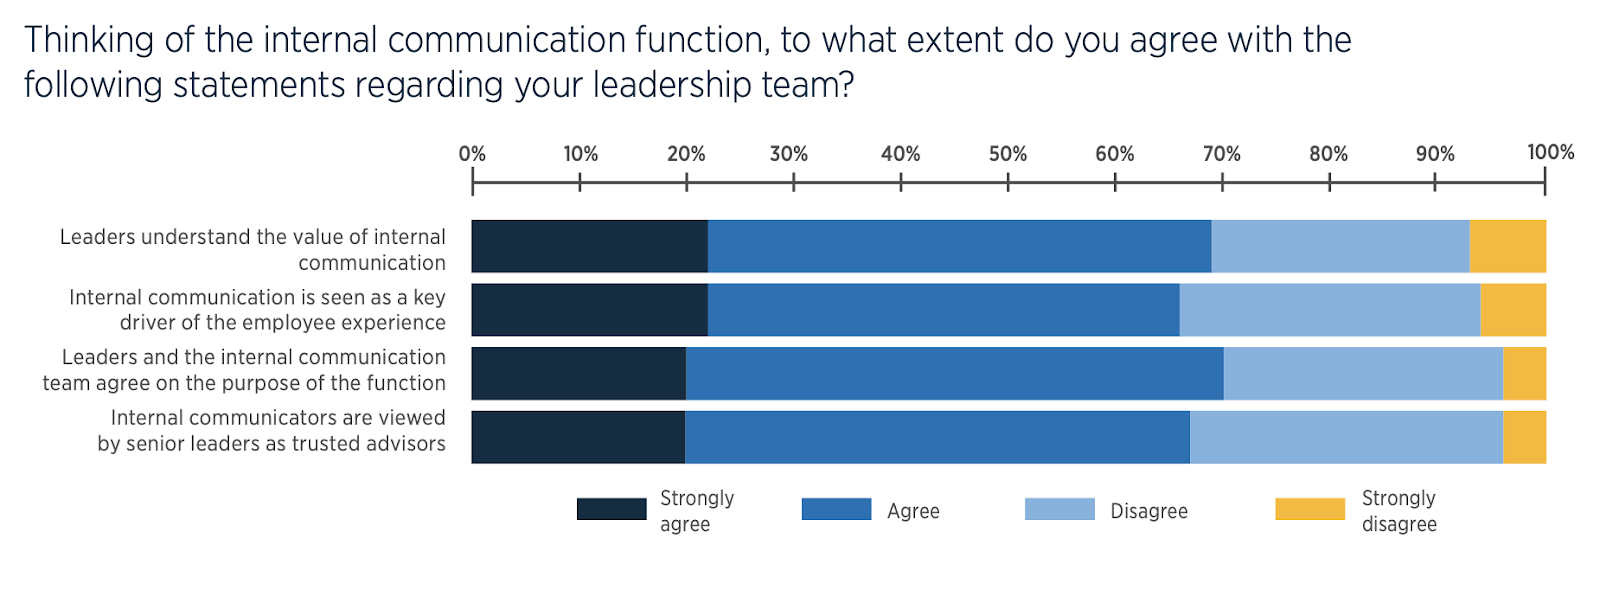 A bar graph showing that most leaders understand the value of internal communication